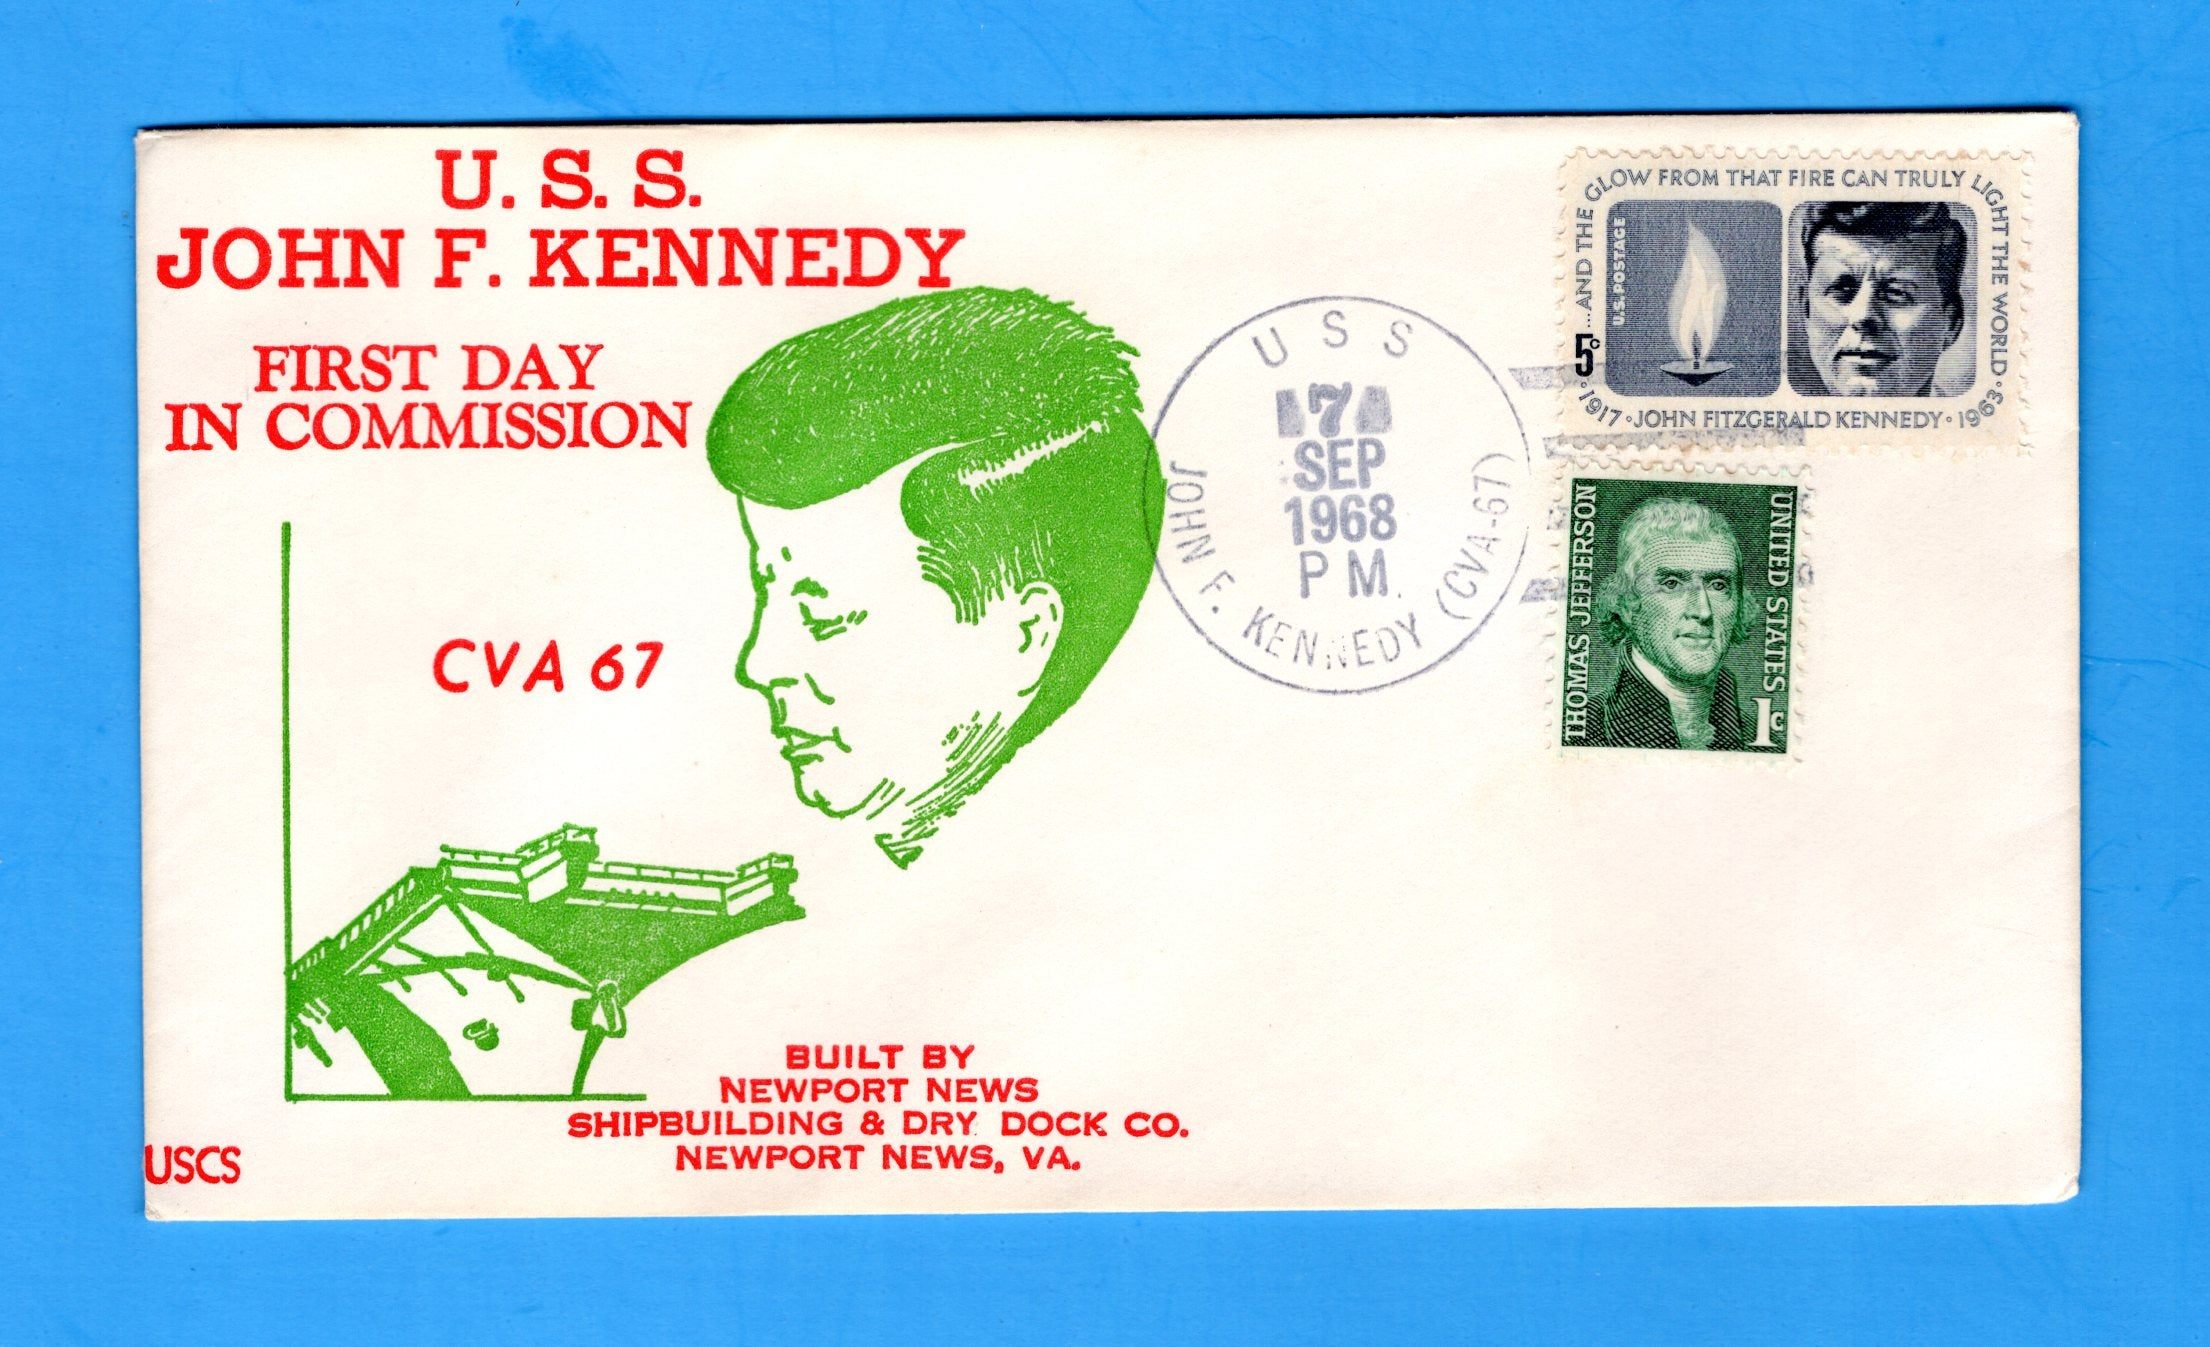 USS John F. Kennedy CVA-67 Commissioned September 7, 1968